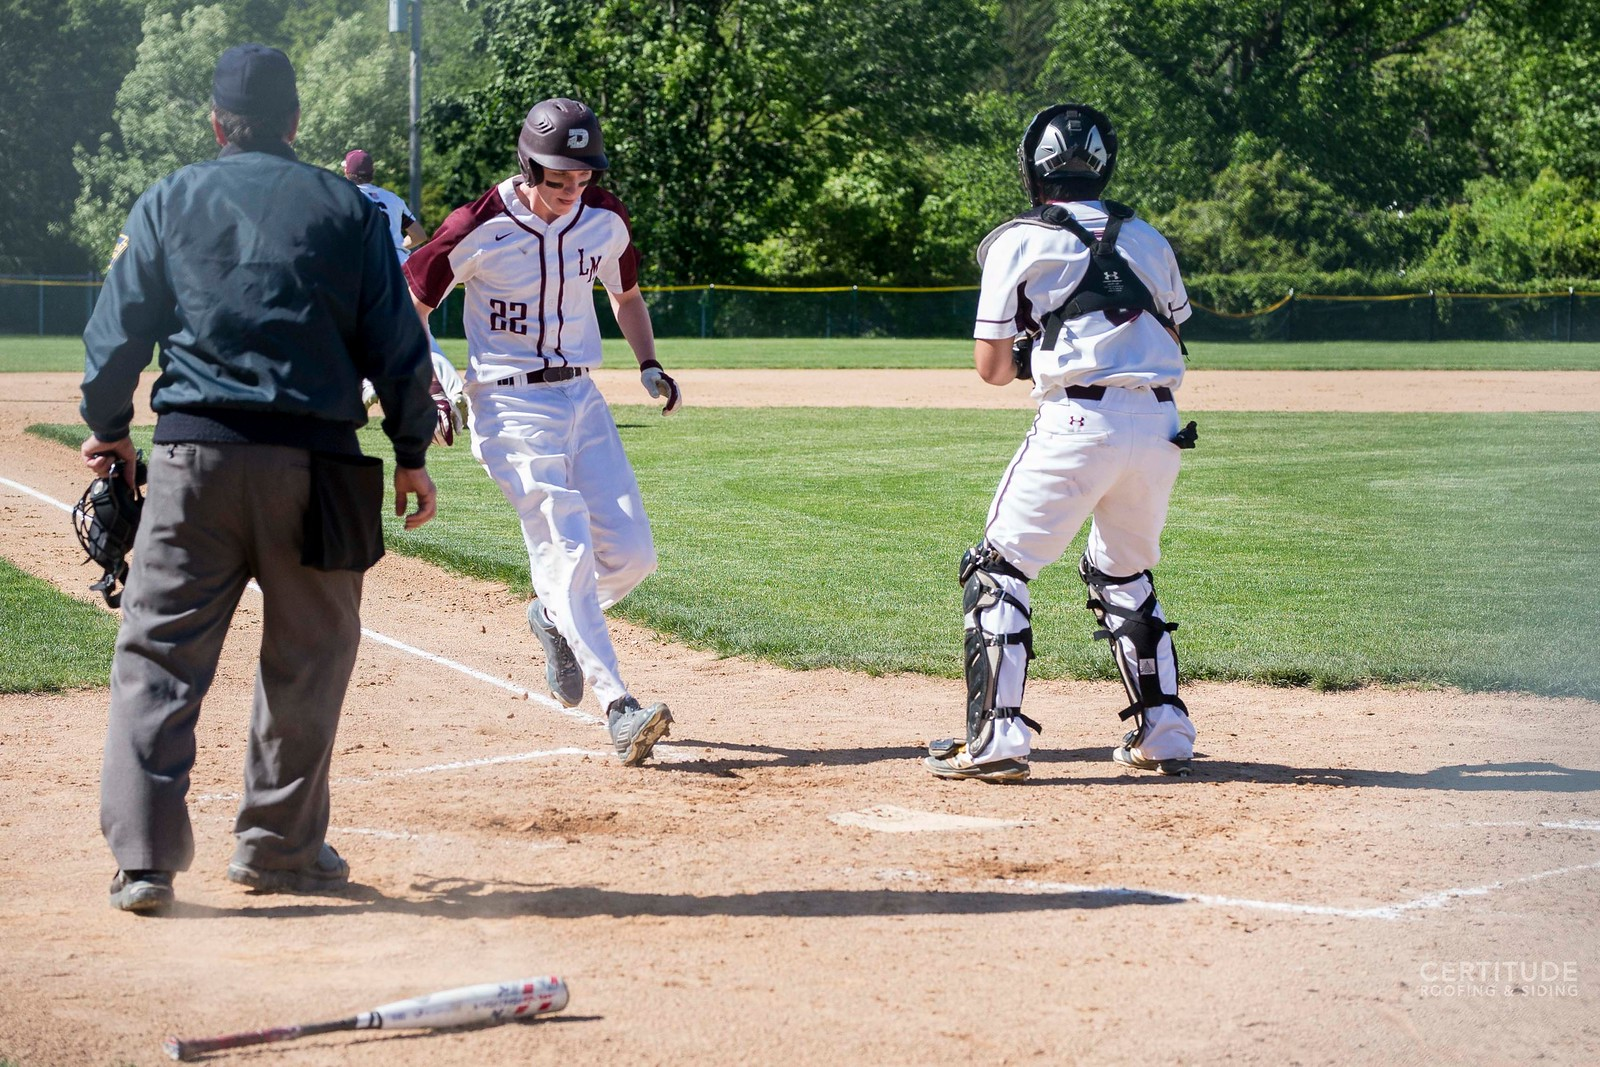 Lower_Merion_BASEBALL_vs_Conestoga-43